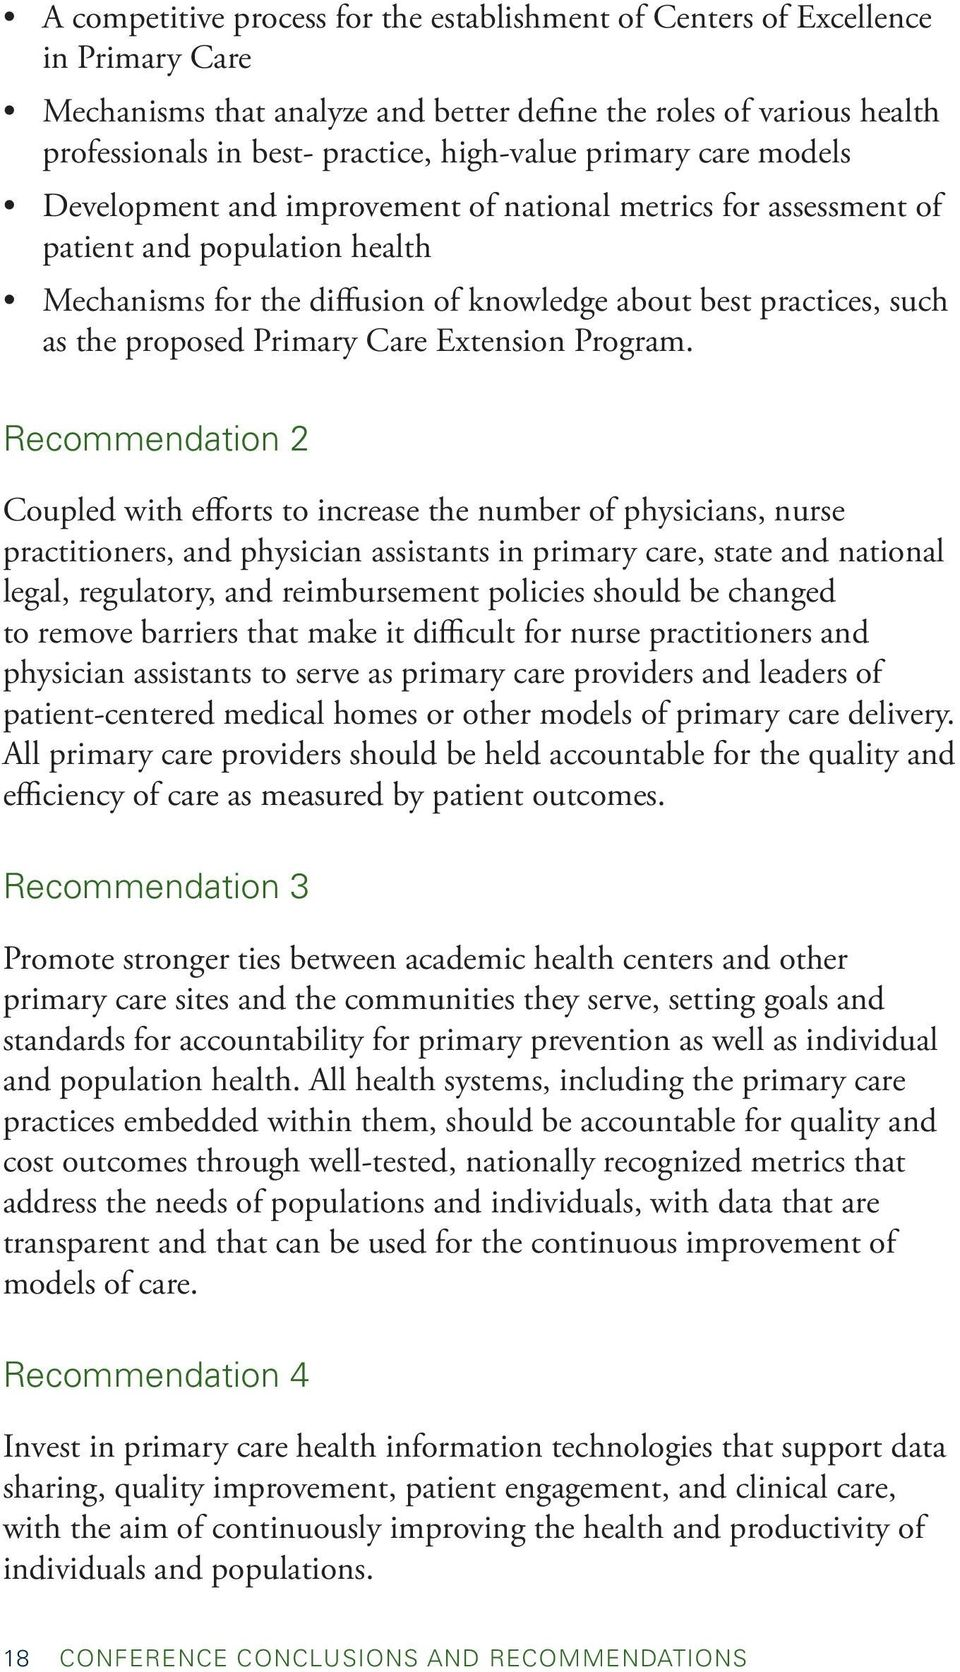 proposed Primary Care Extension Program.